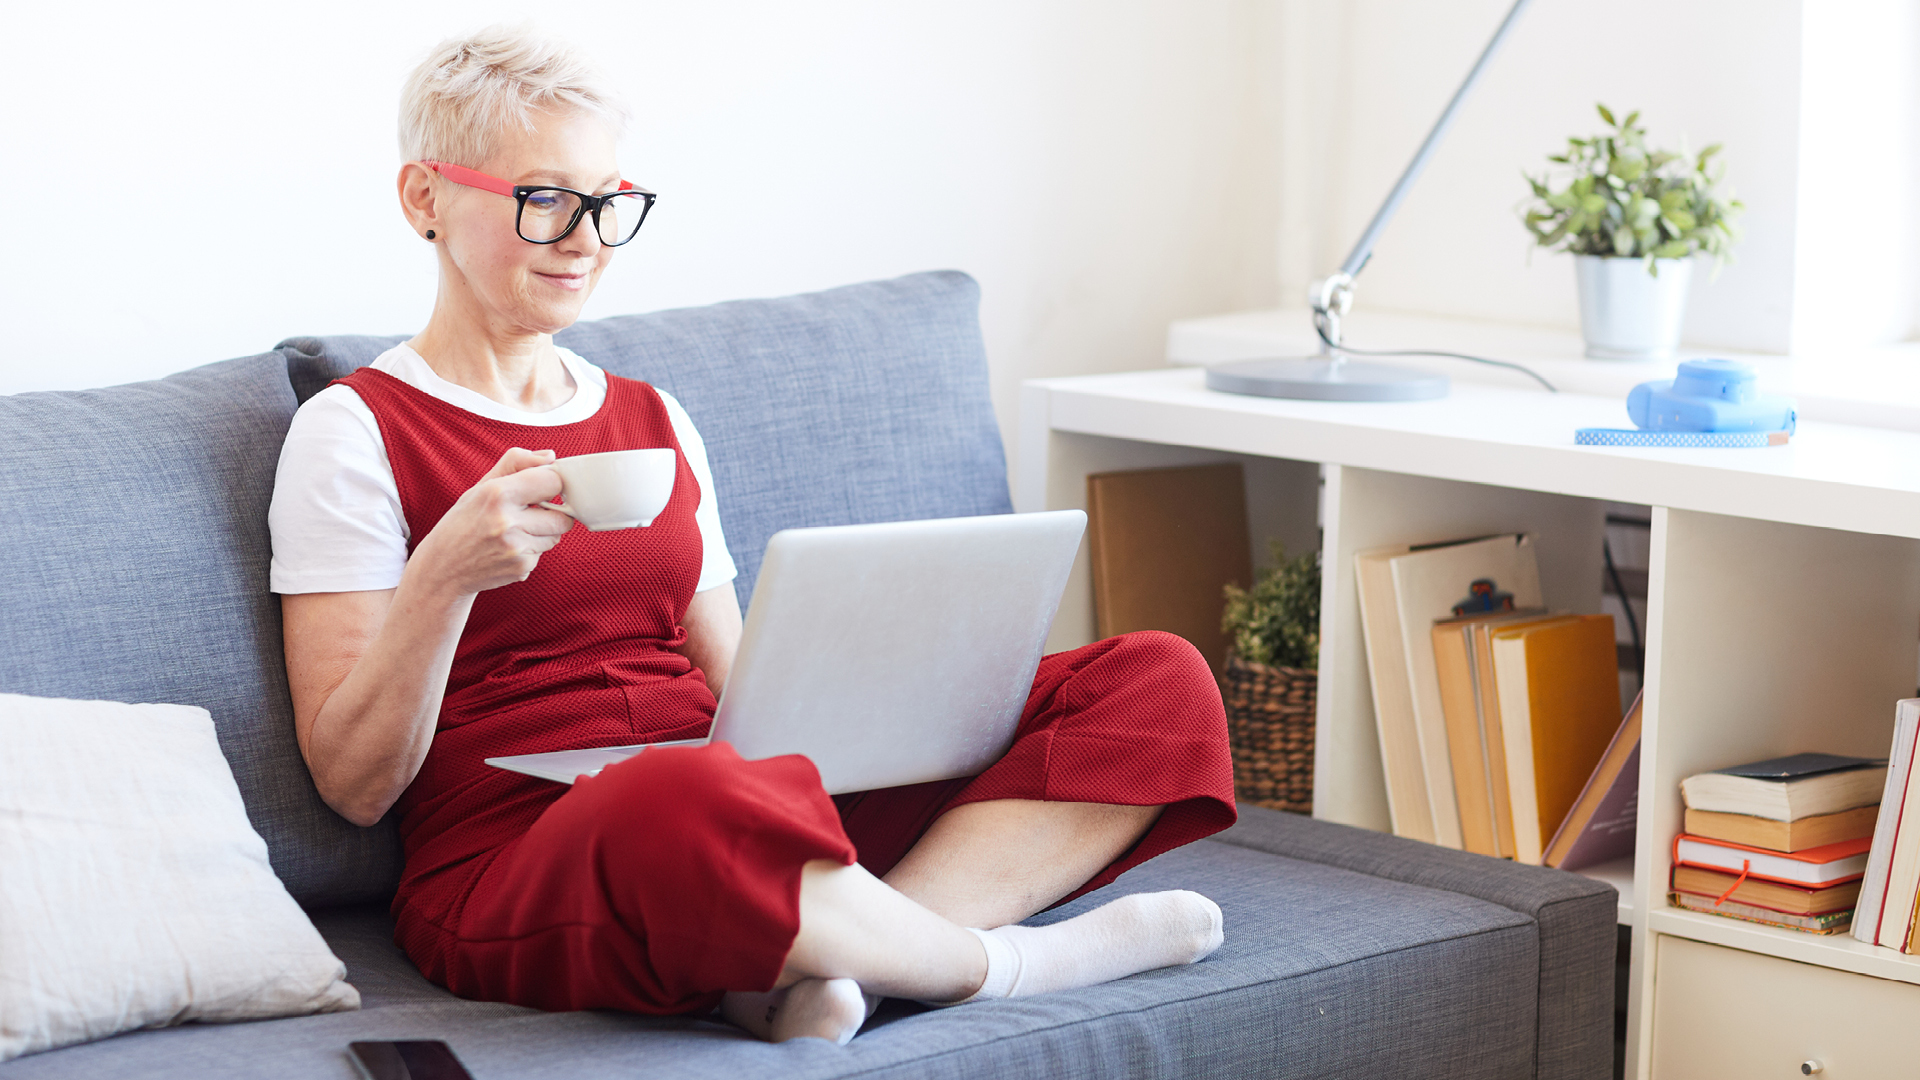 woman on couch looking at laptop